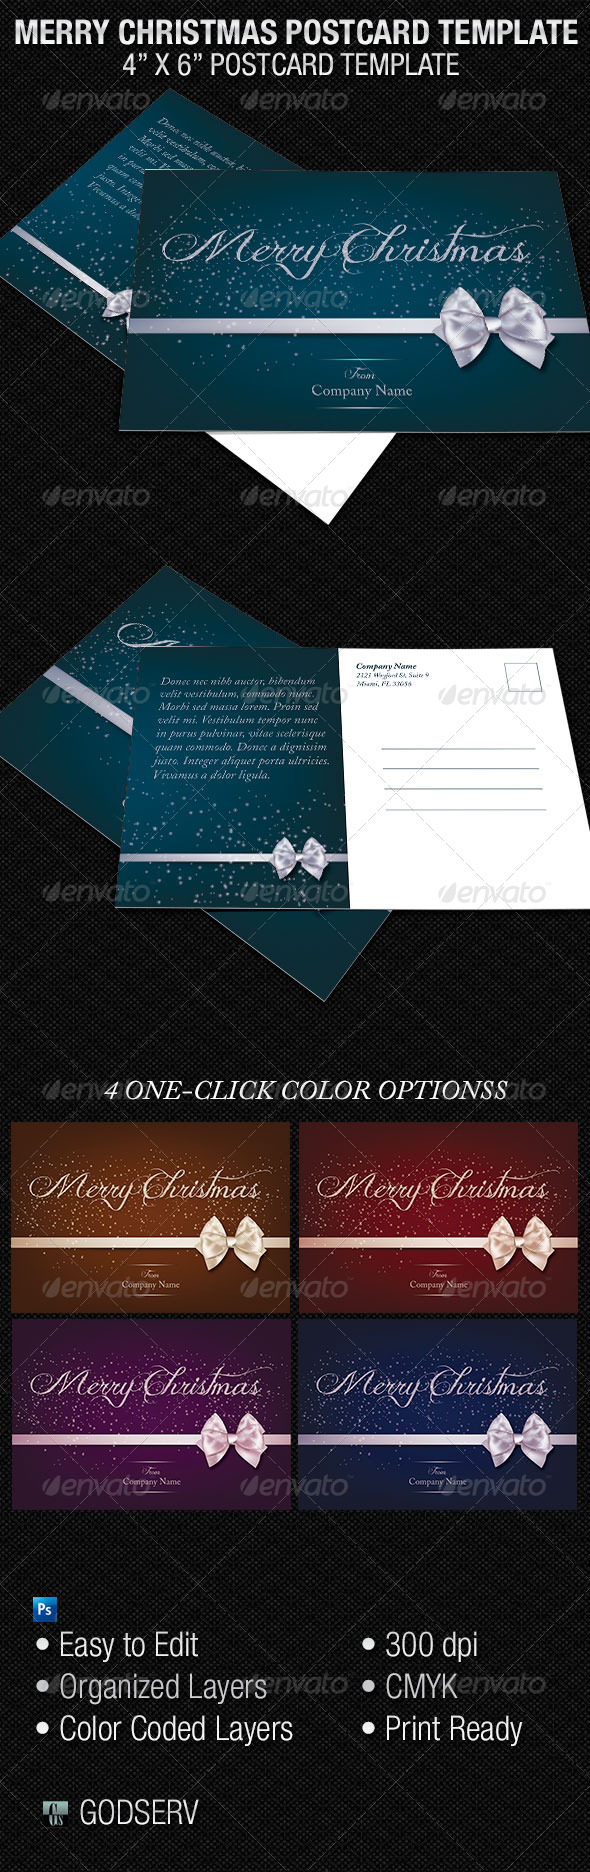 GraphicRiver Merry Christmas Postcard Template 6146827